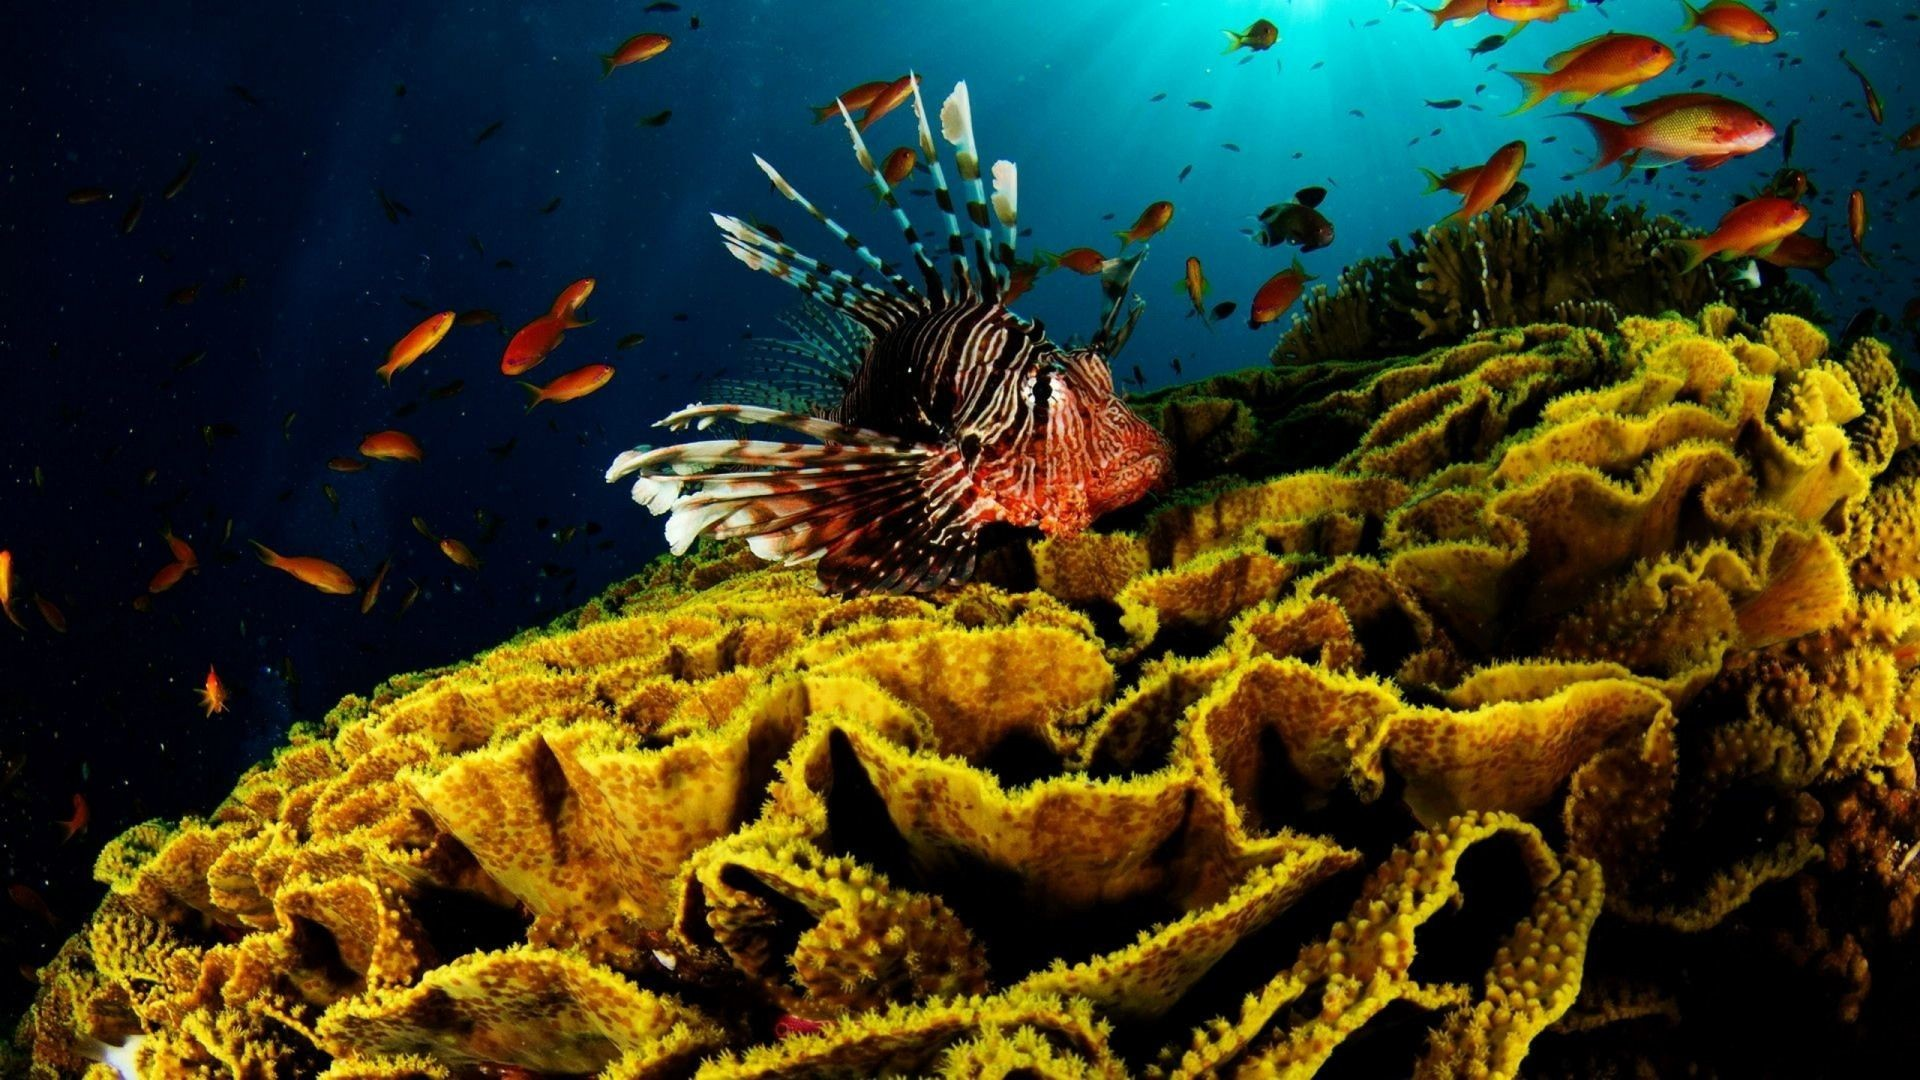 1920x1080 Coral Reef Wallpaper 25134